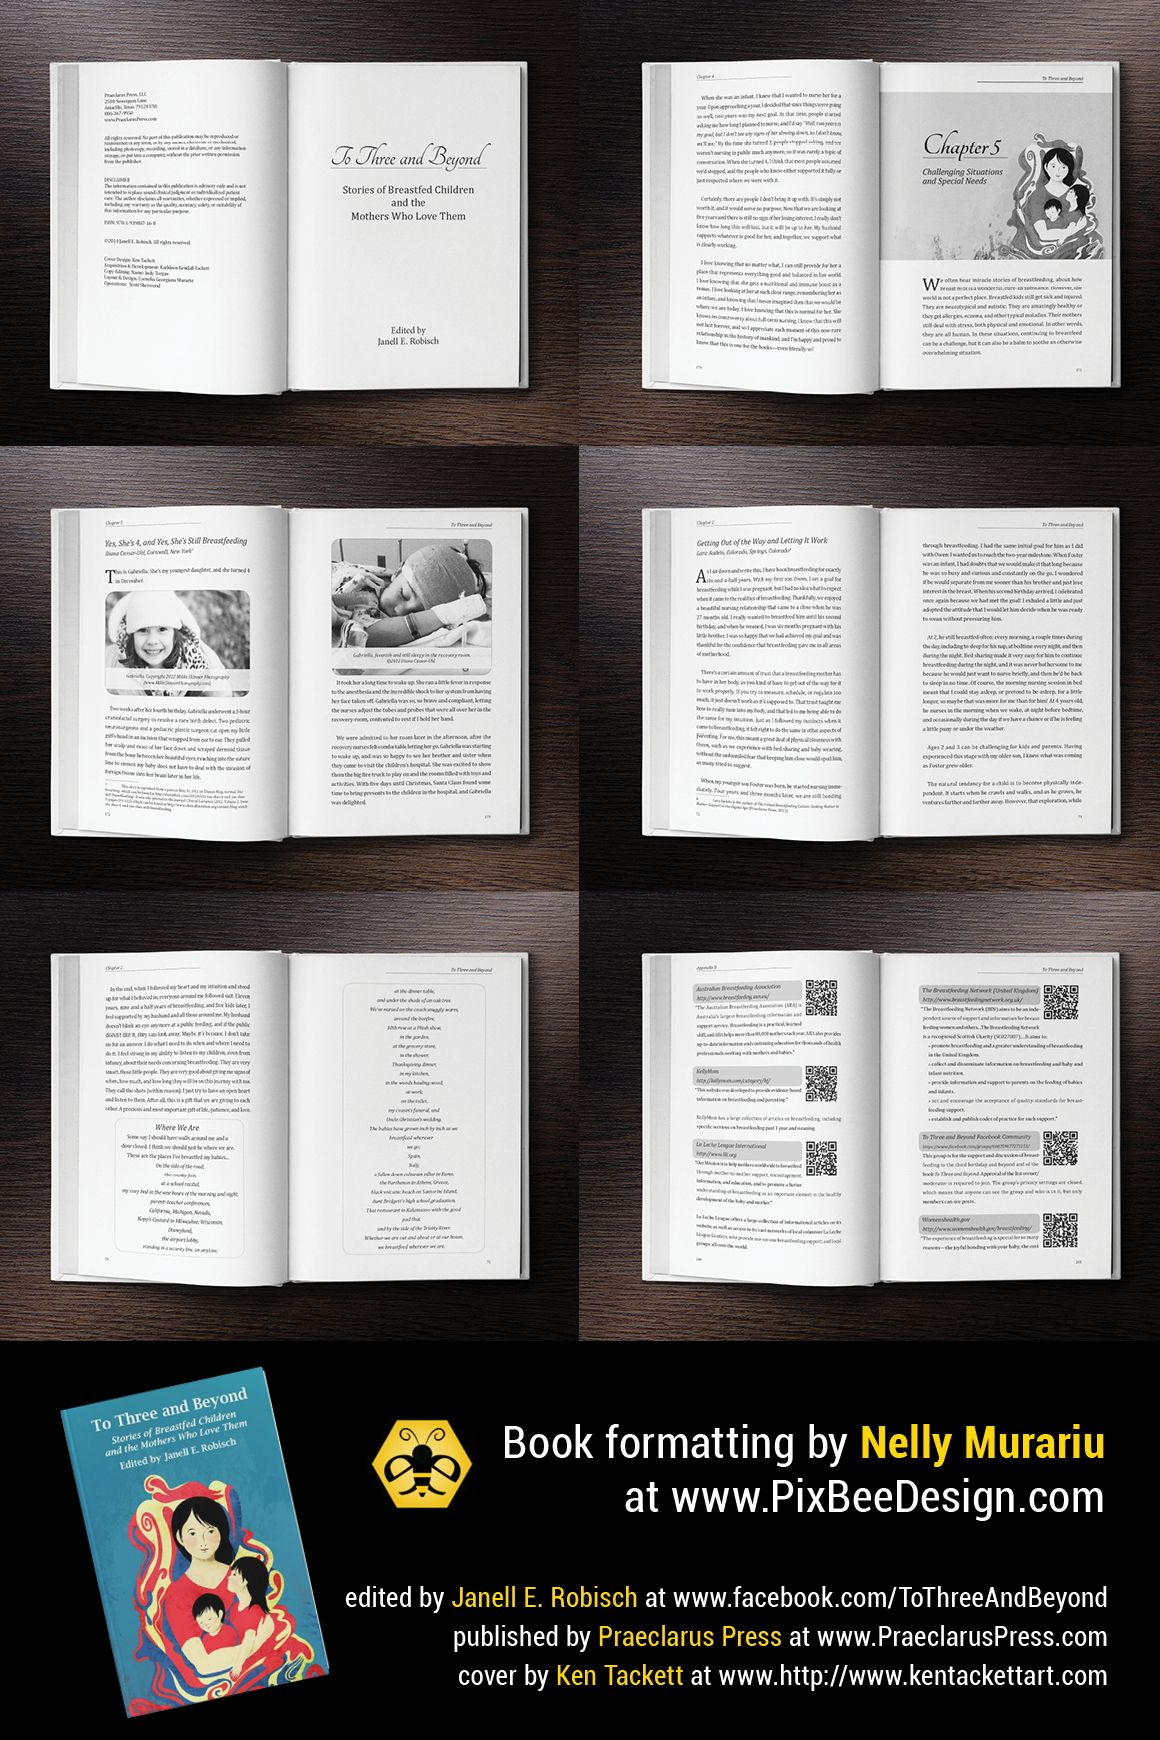 Layout Design And Formatting For An Amazing Book With Stories Of - Breastfeeding brochure templates